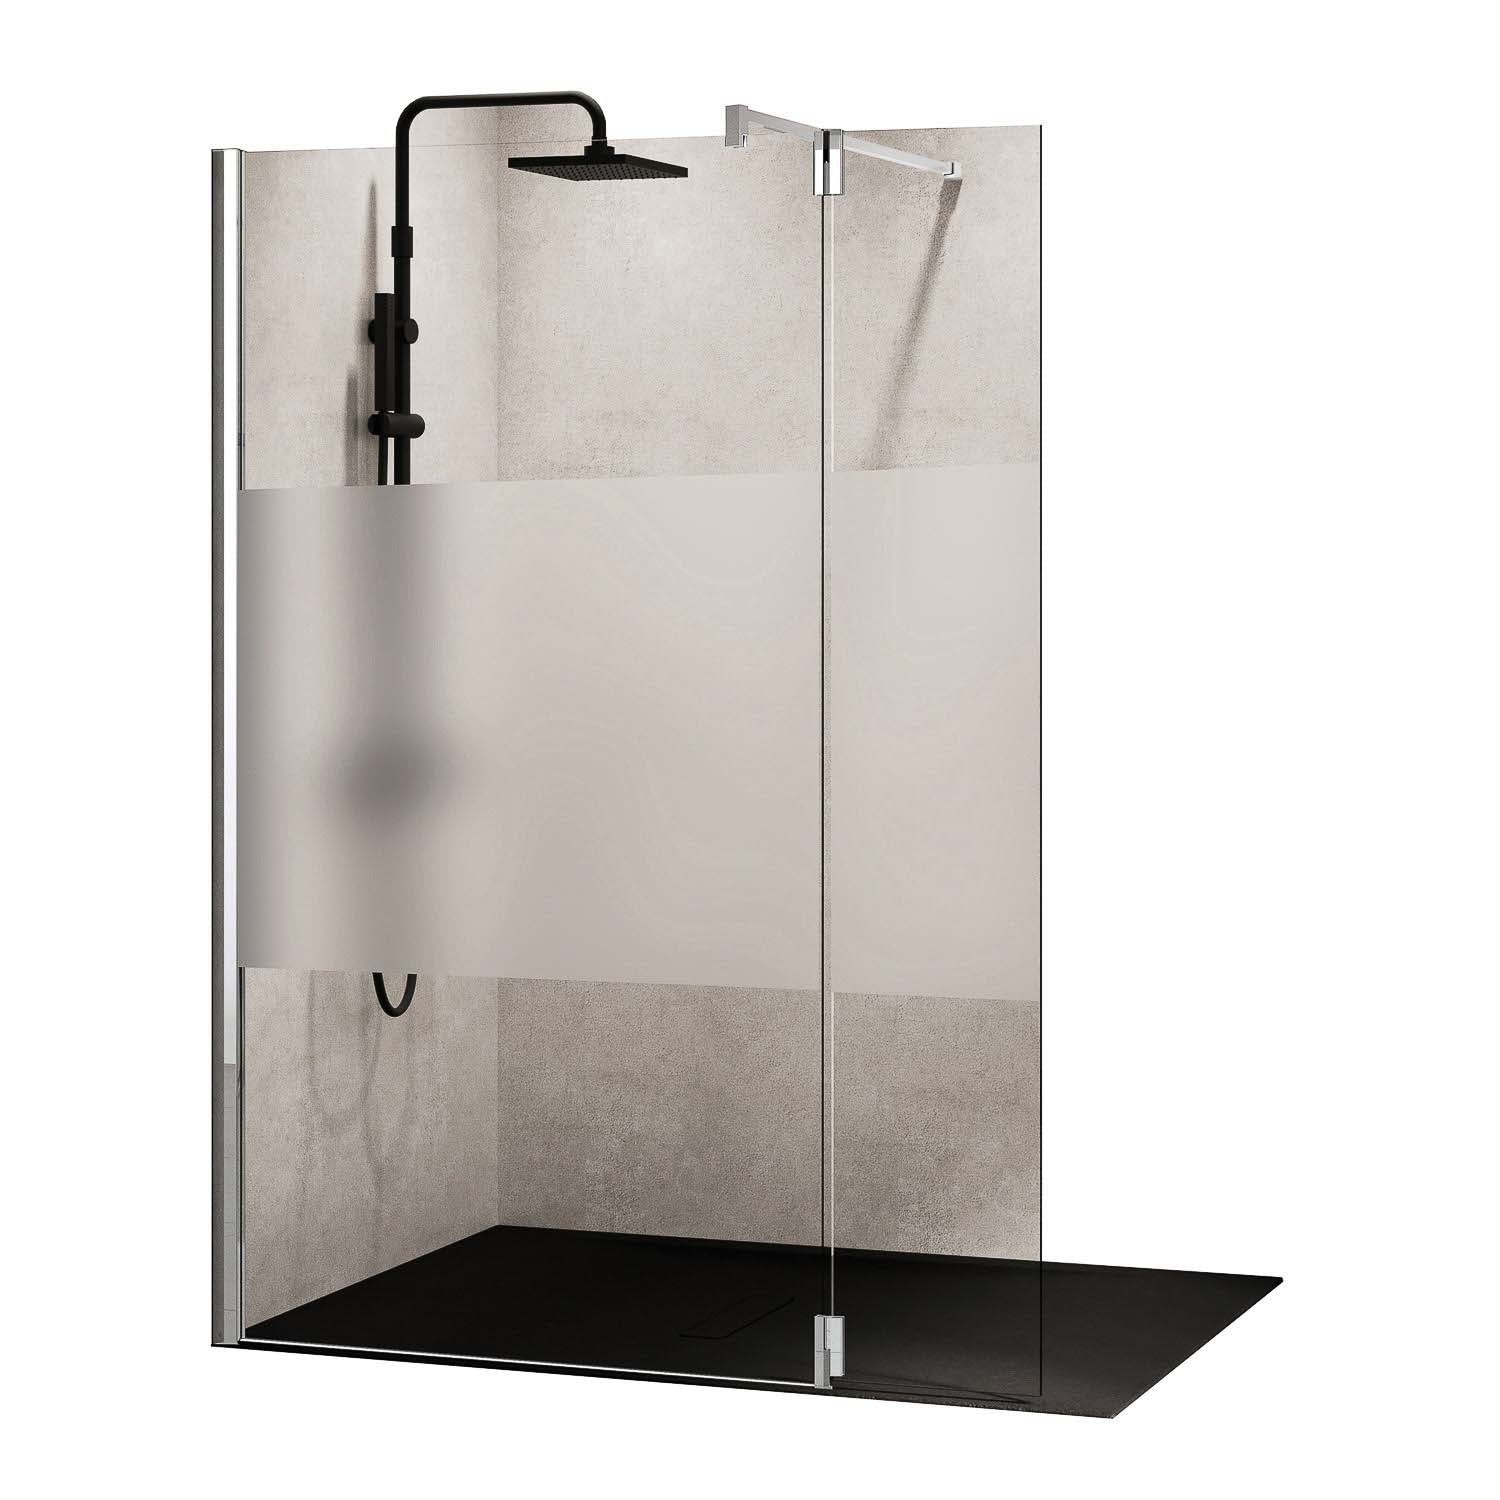 670-700mm Ergo Wet Room Screen Satin Band Glass with a chrome finish on a white background